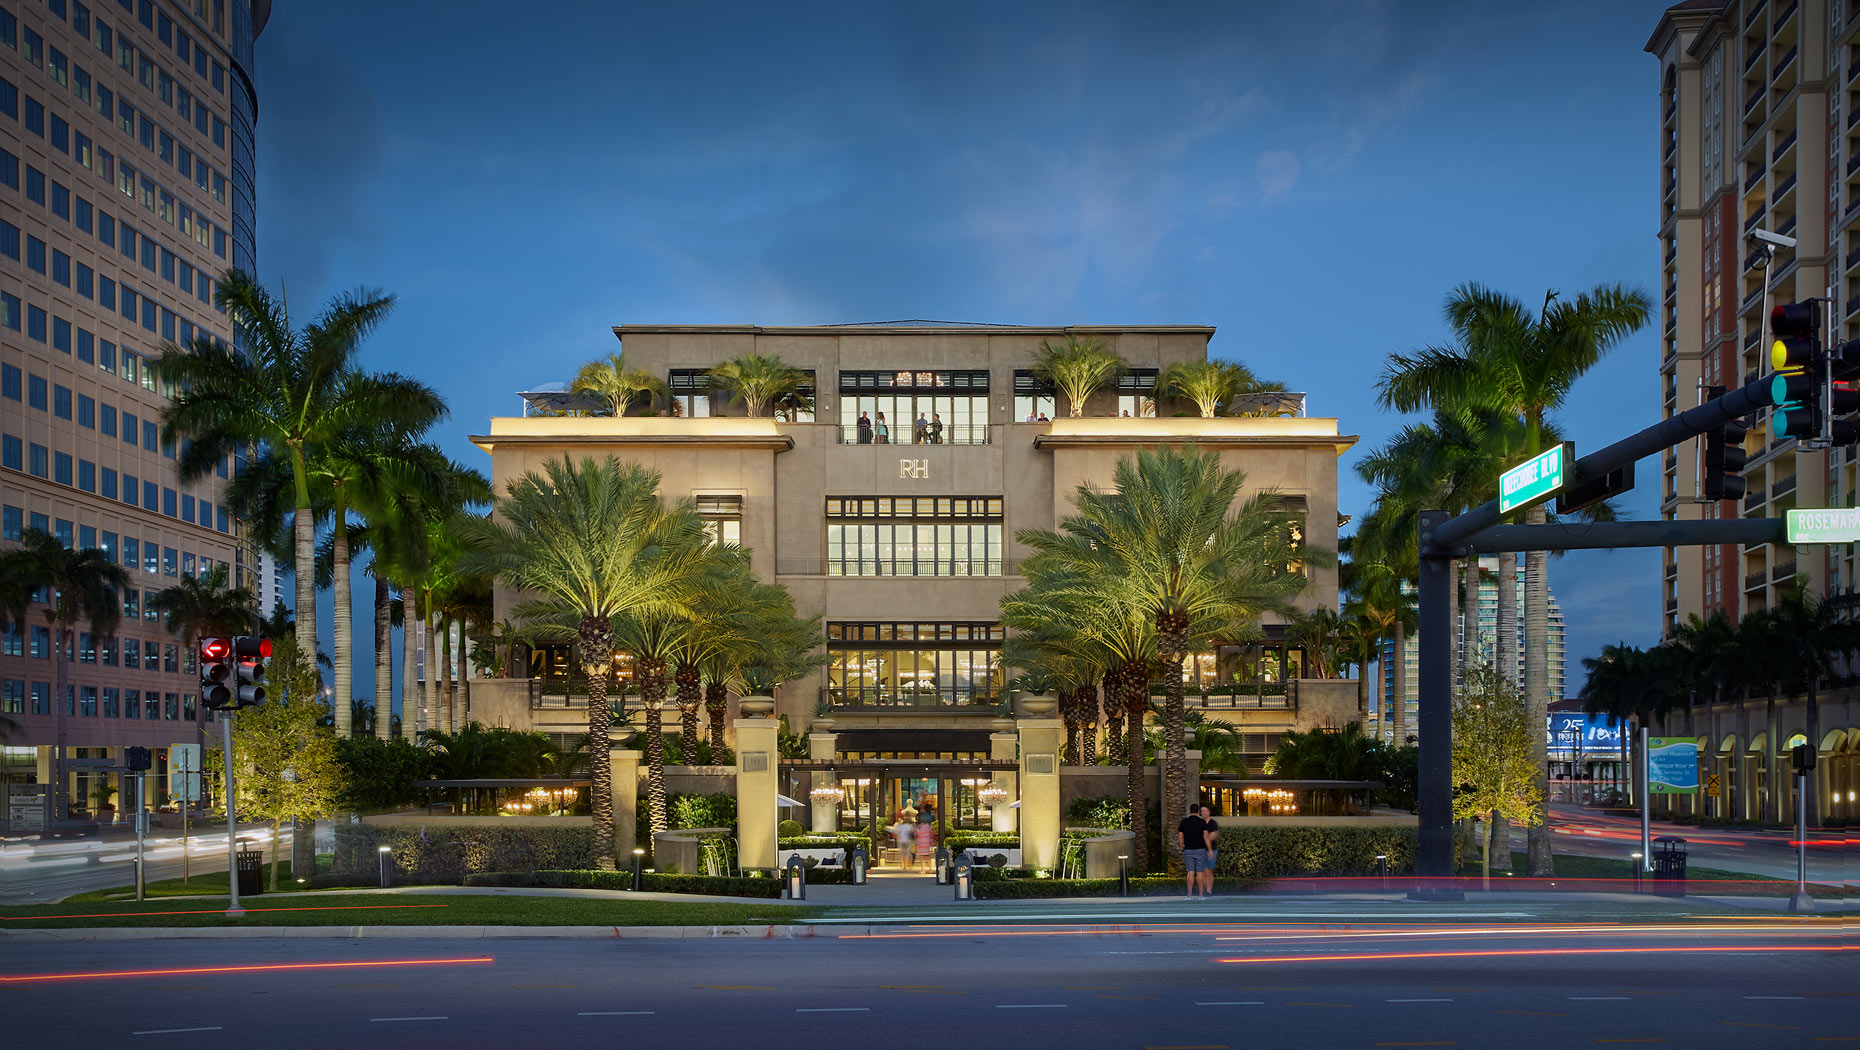 restoration hardware west palm beach photography commercial building